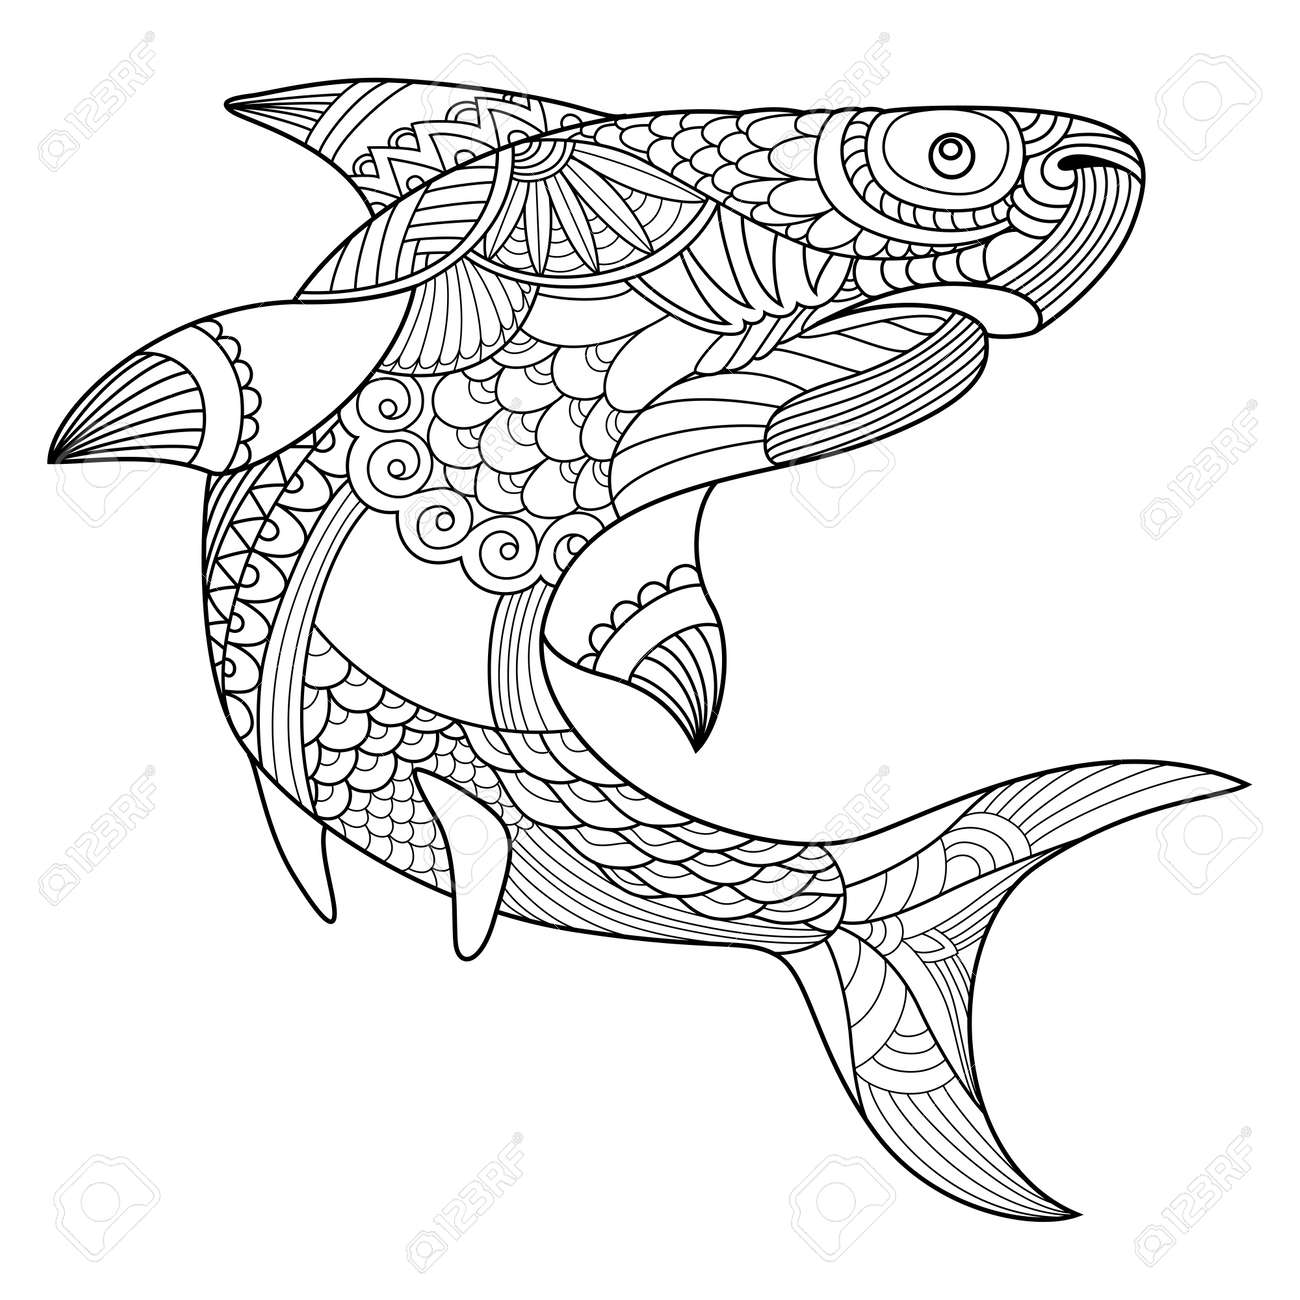 Shark Coloring Book For Adults Vector Illustration Anti Stress